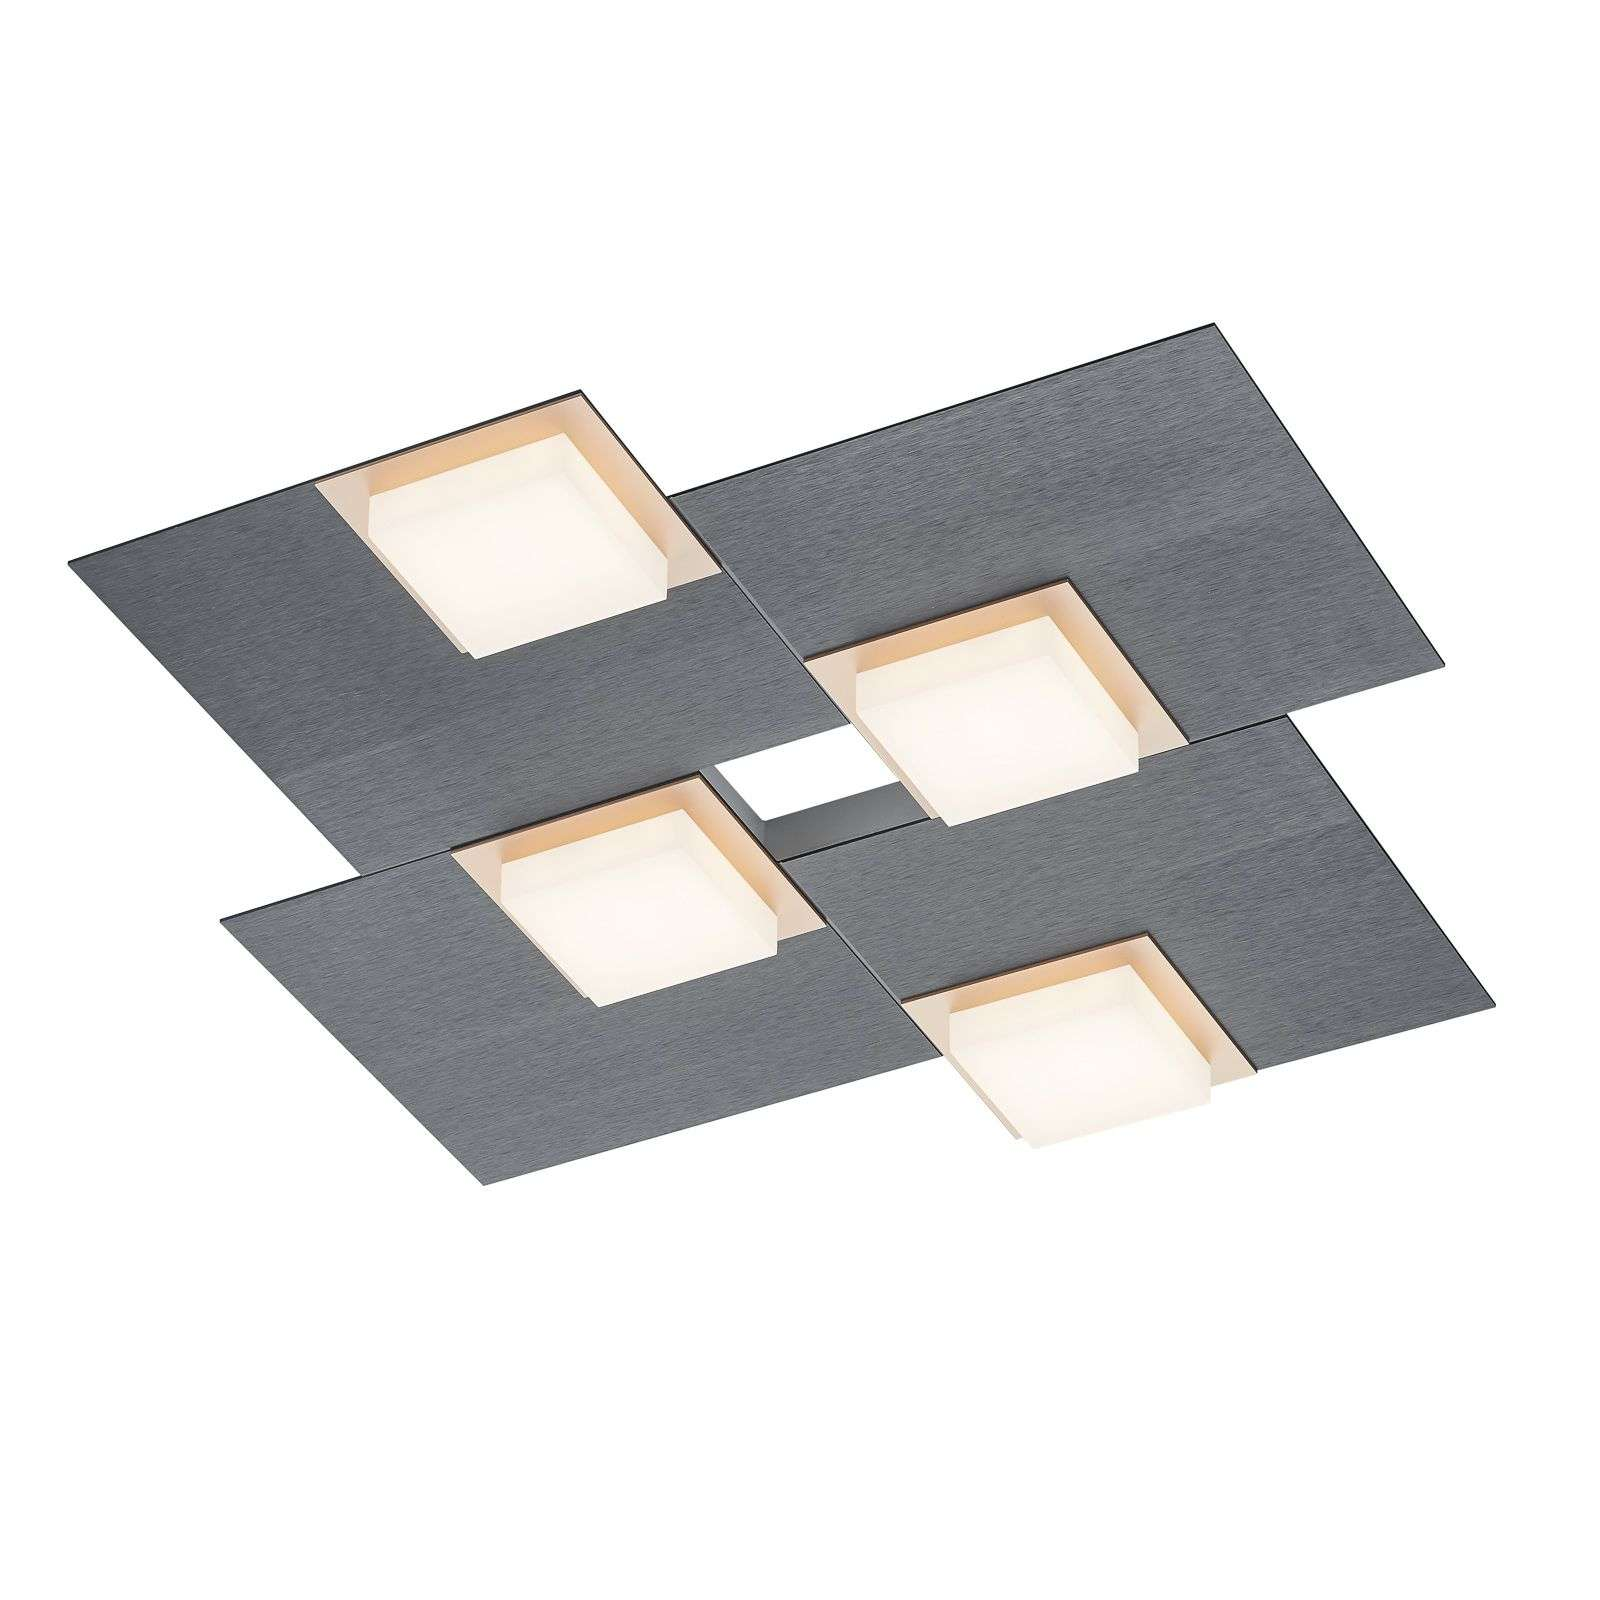 BANKAMP Quadro lámpara LED de techo 32 W antracita